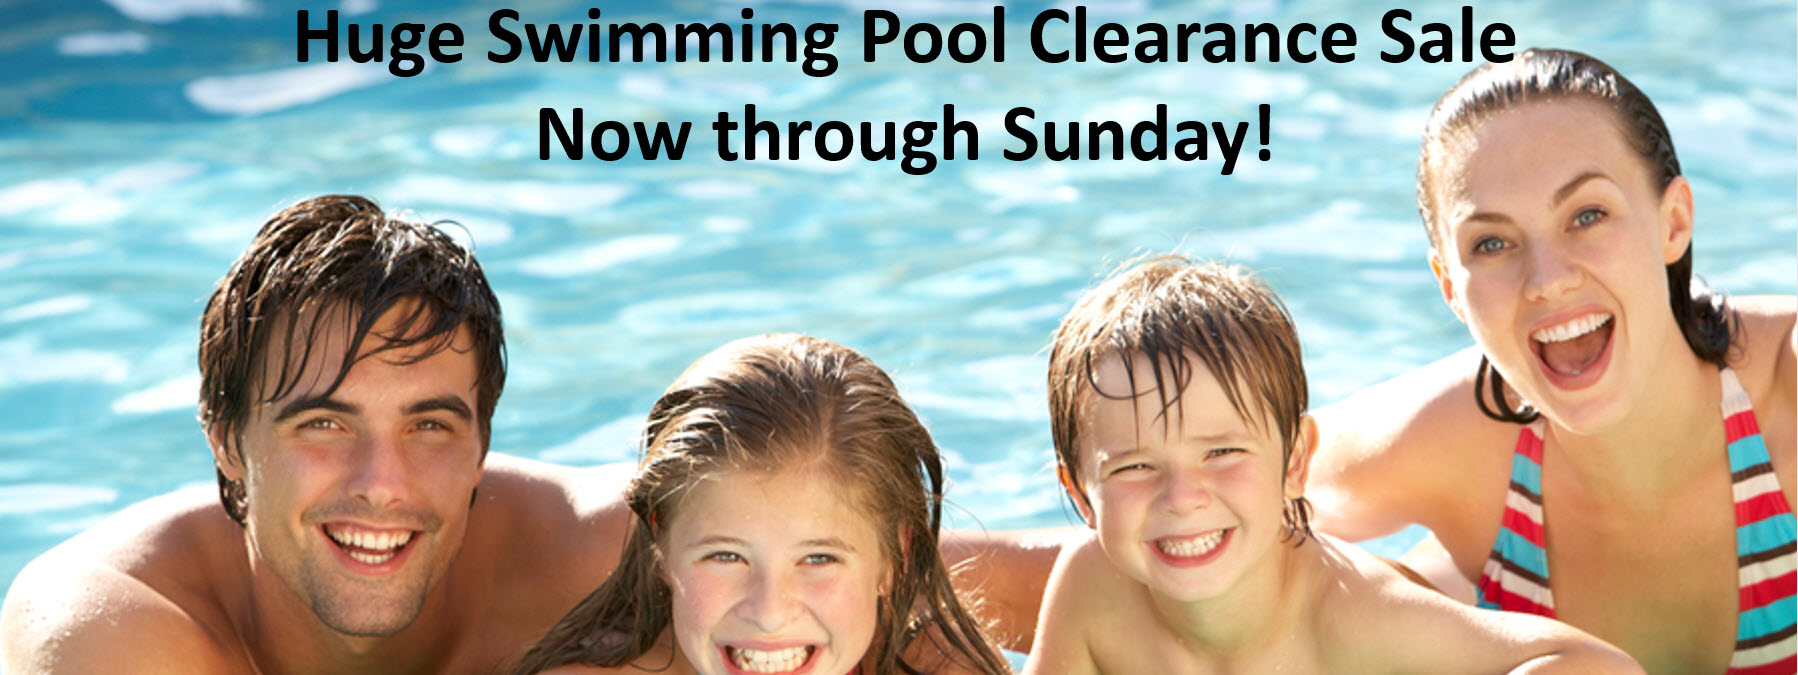 Hot Tubs, Swimming Pools on Sale - Ft. Lauderdale, Pompano, FL